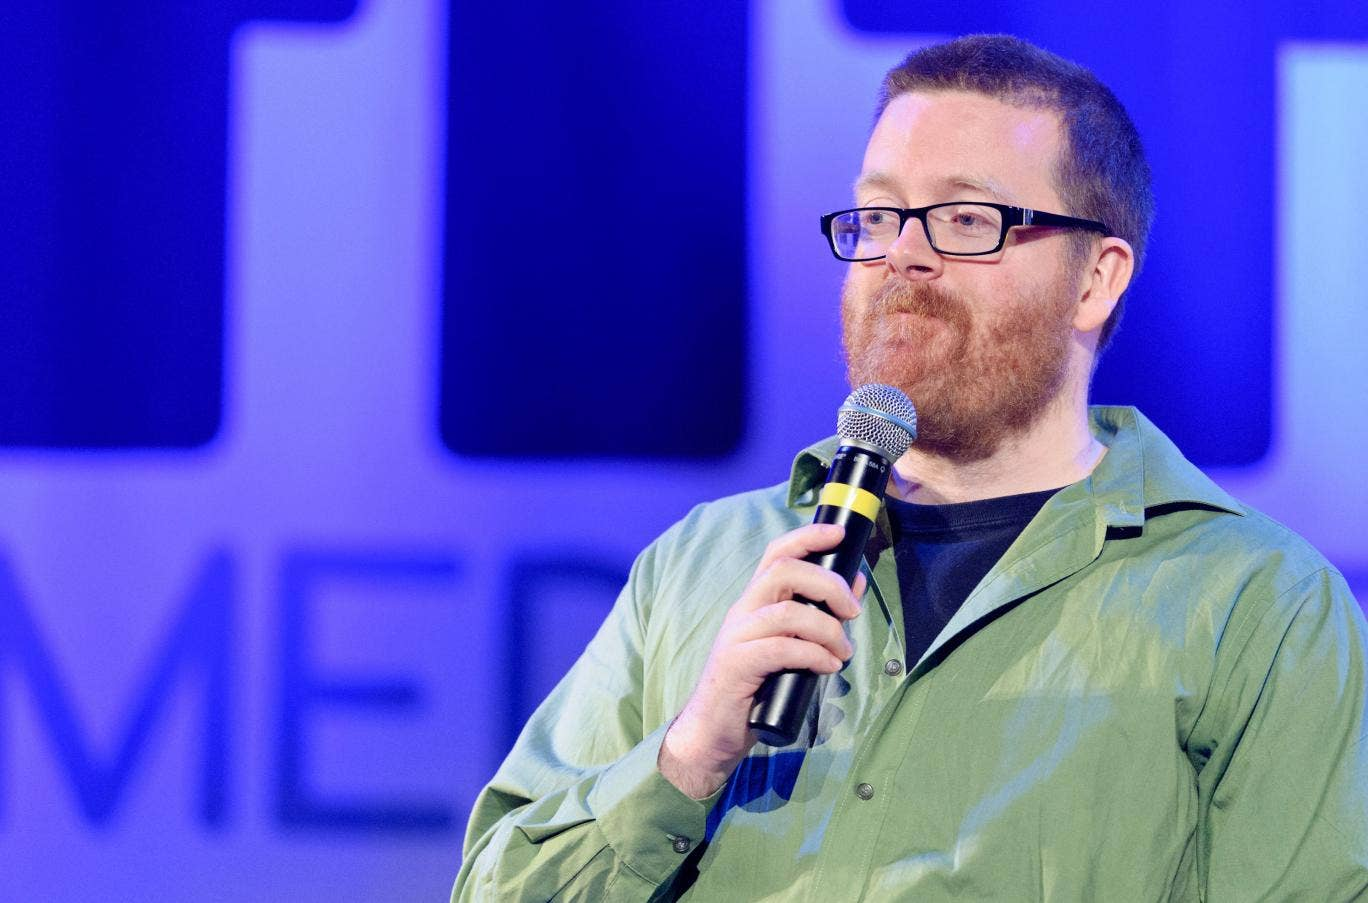 """Frankie Boyle has called on the sacking of Jeremy Clarkson because the presenter is a """"cultural tumour"""" he says"""